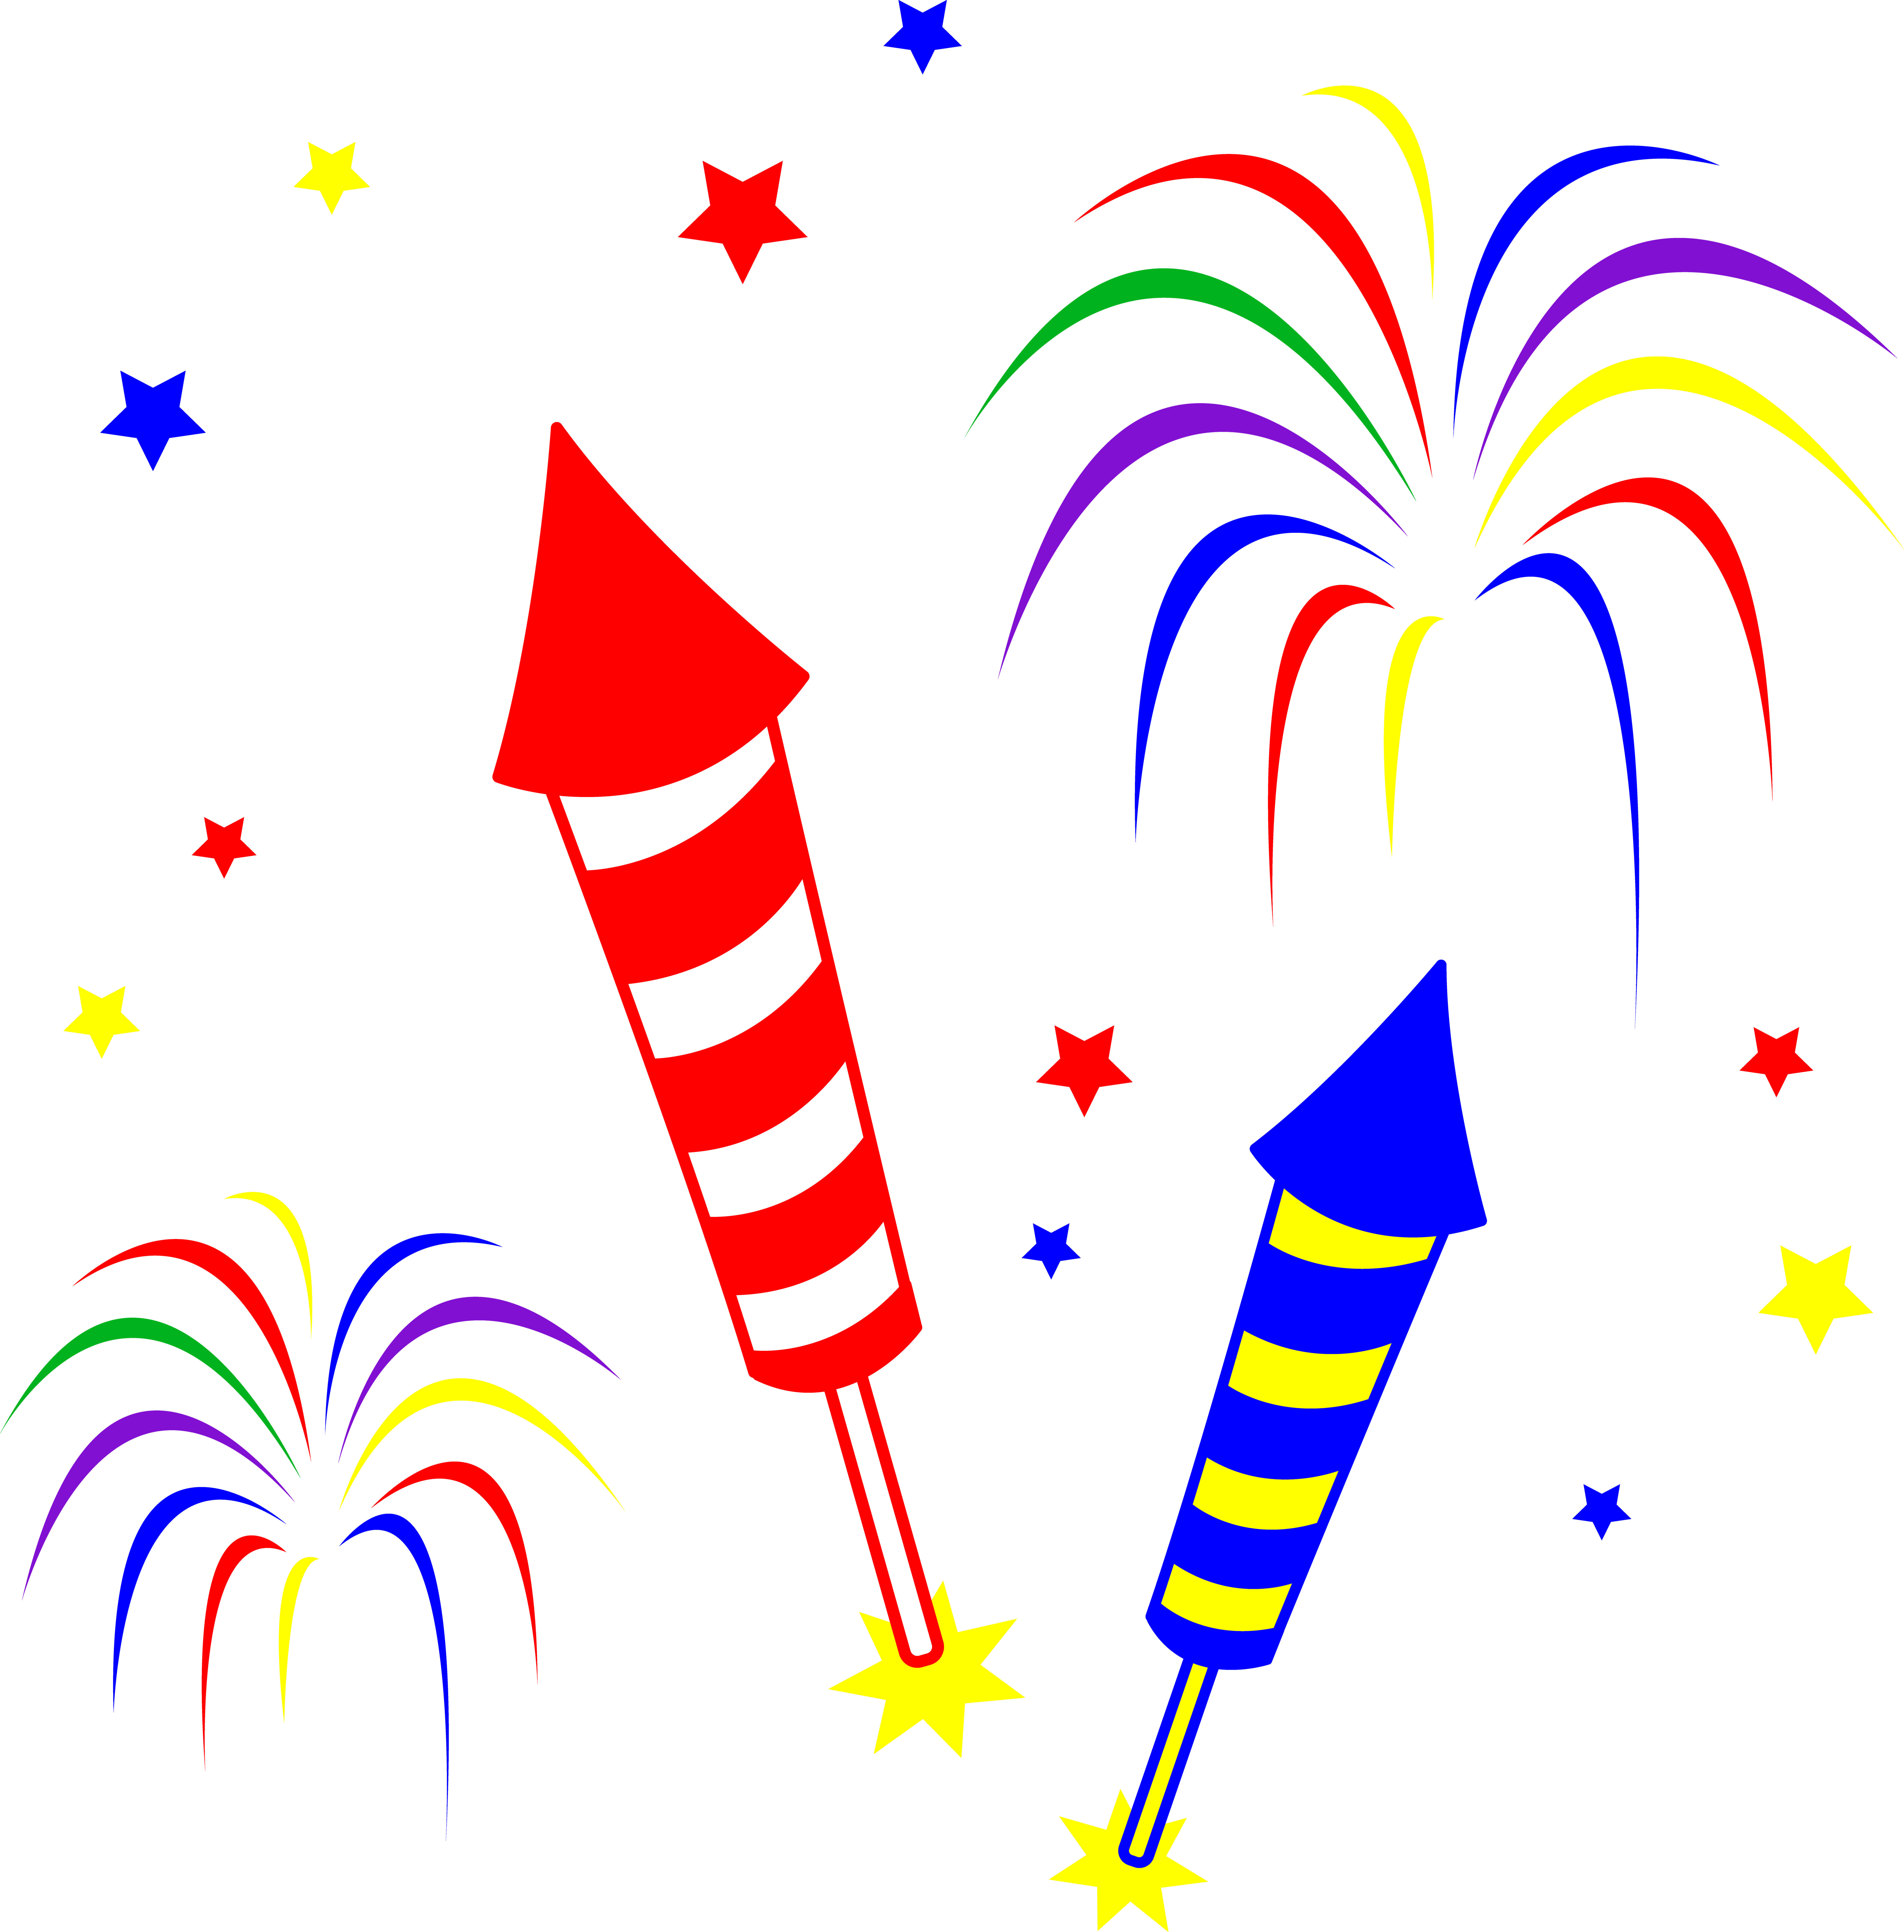 Cartoon Fireworks Clip Art Fr - Fireworks Pictures Free Clipart